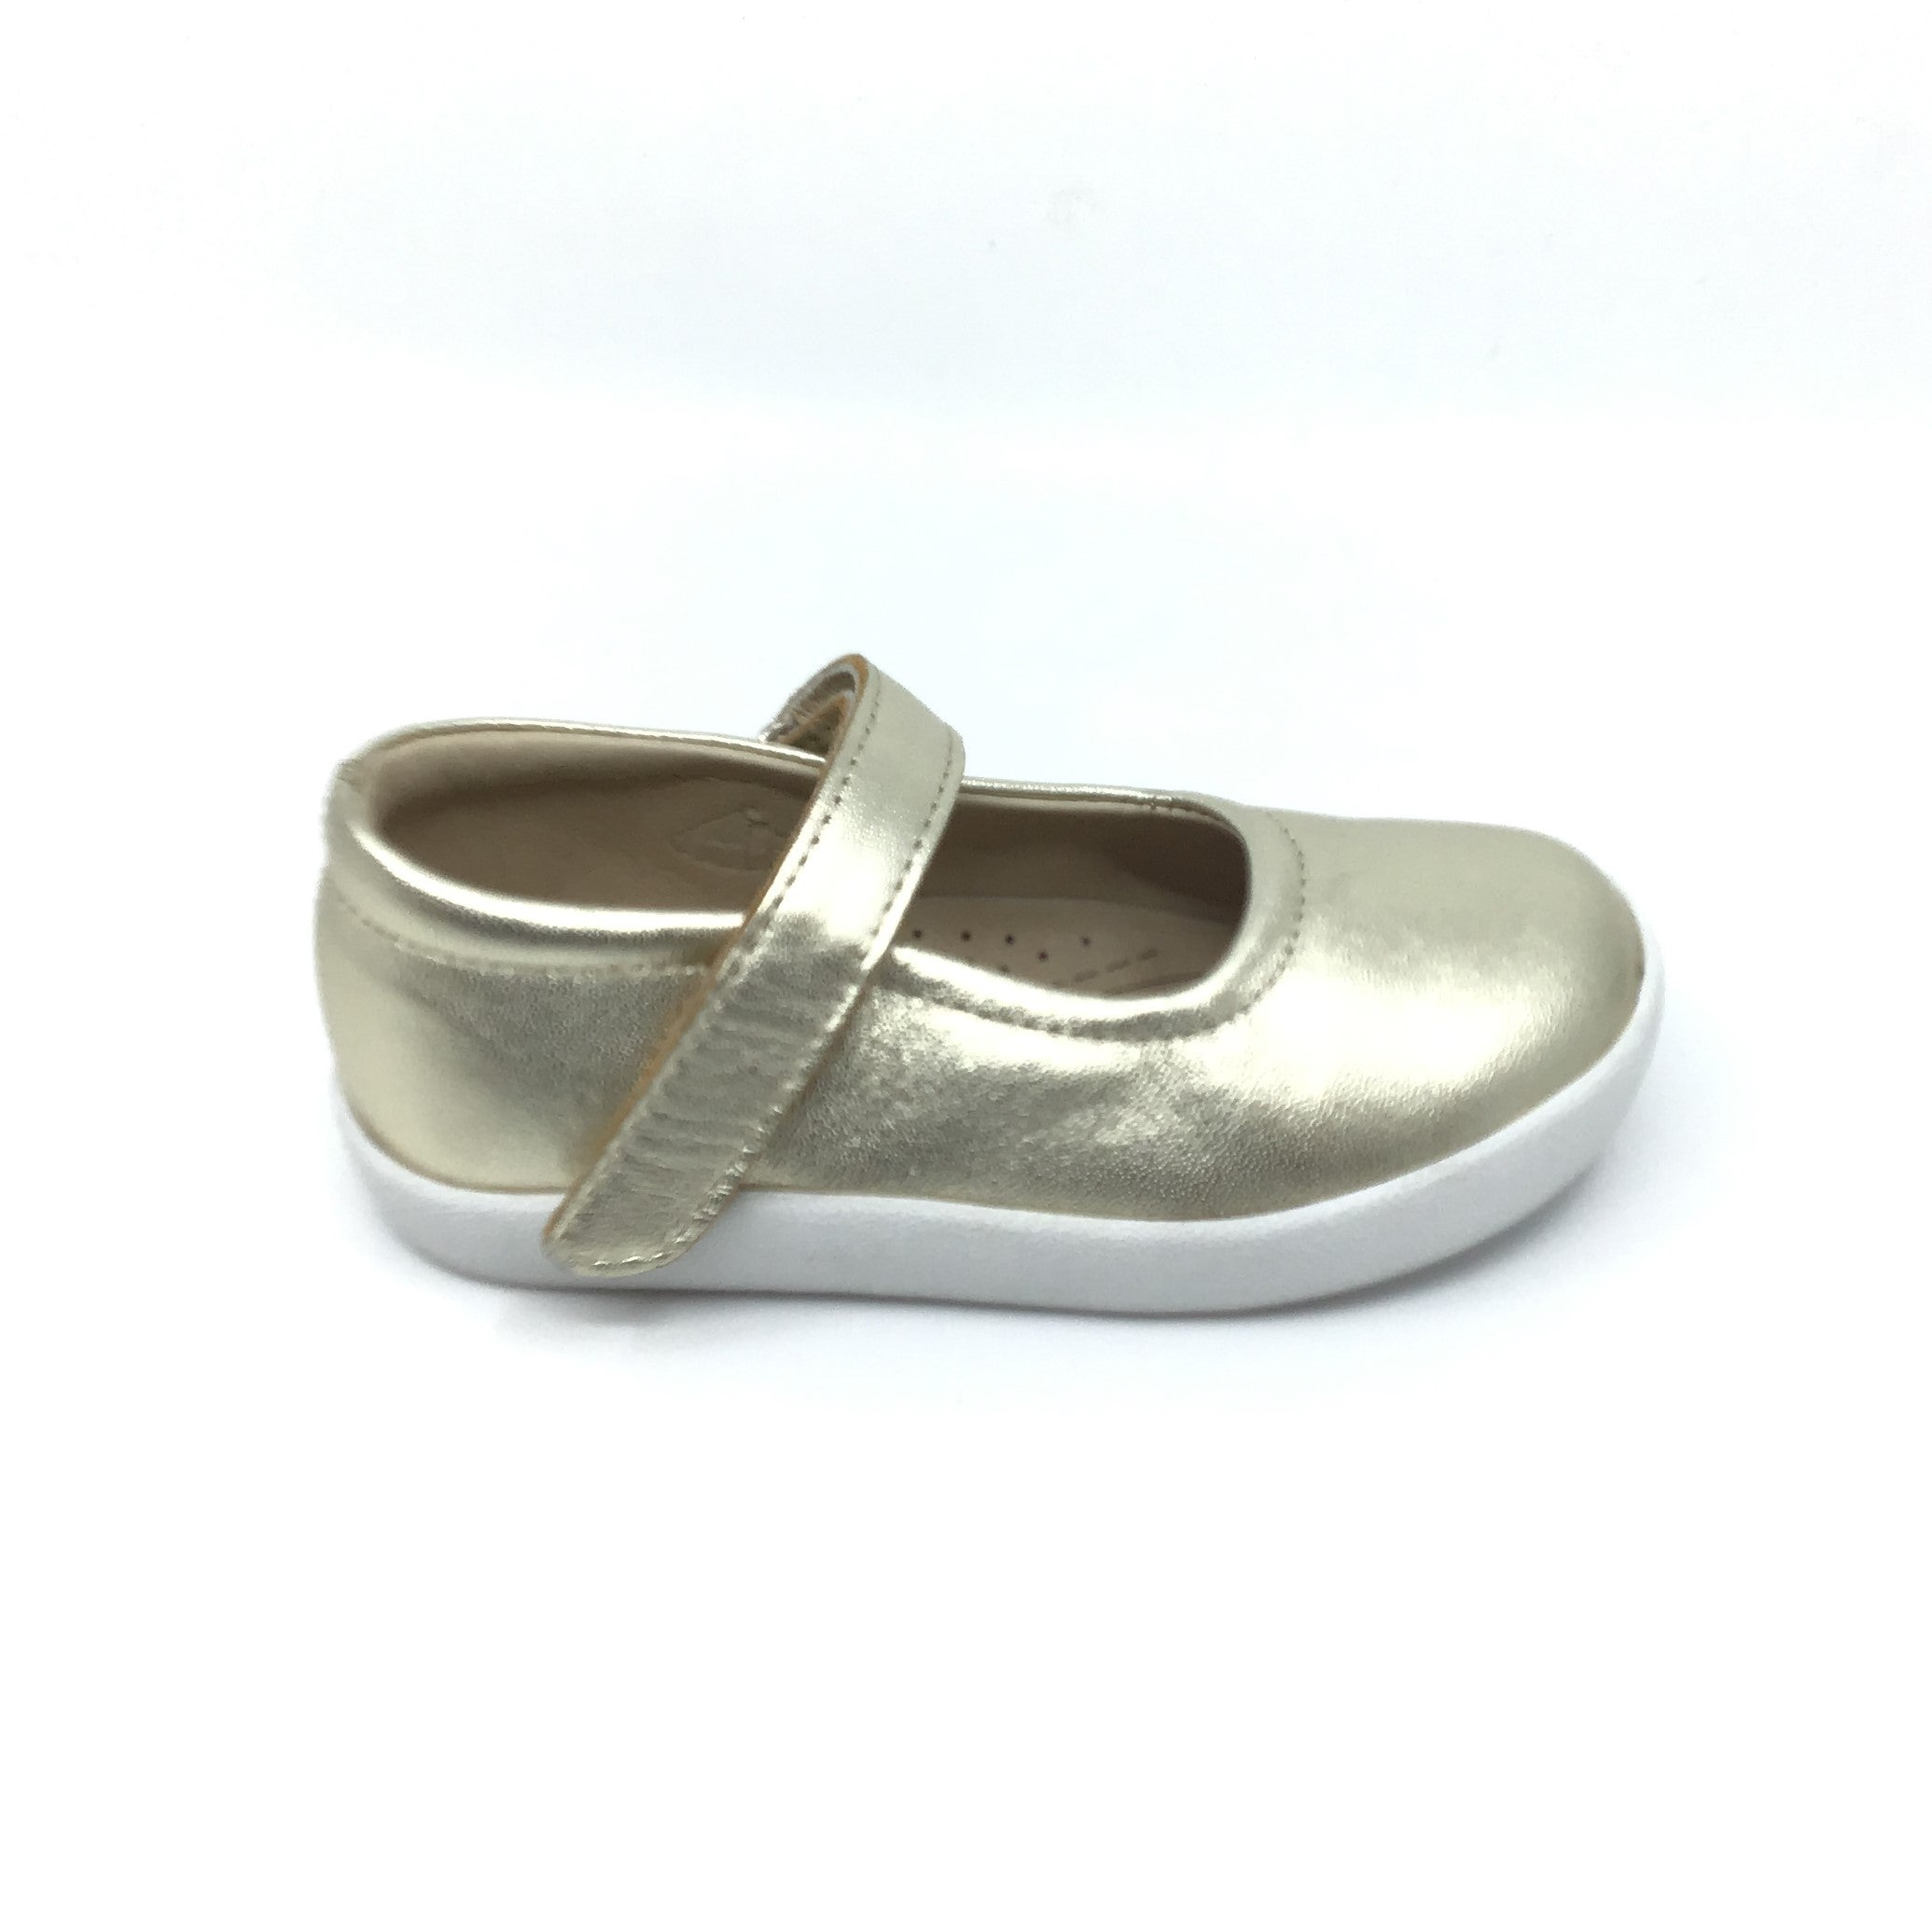 Old Soles Gold Shoe with Velcro Strap